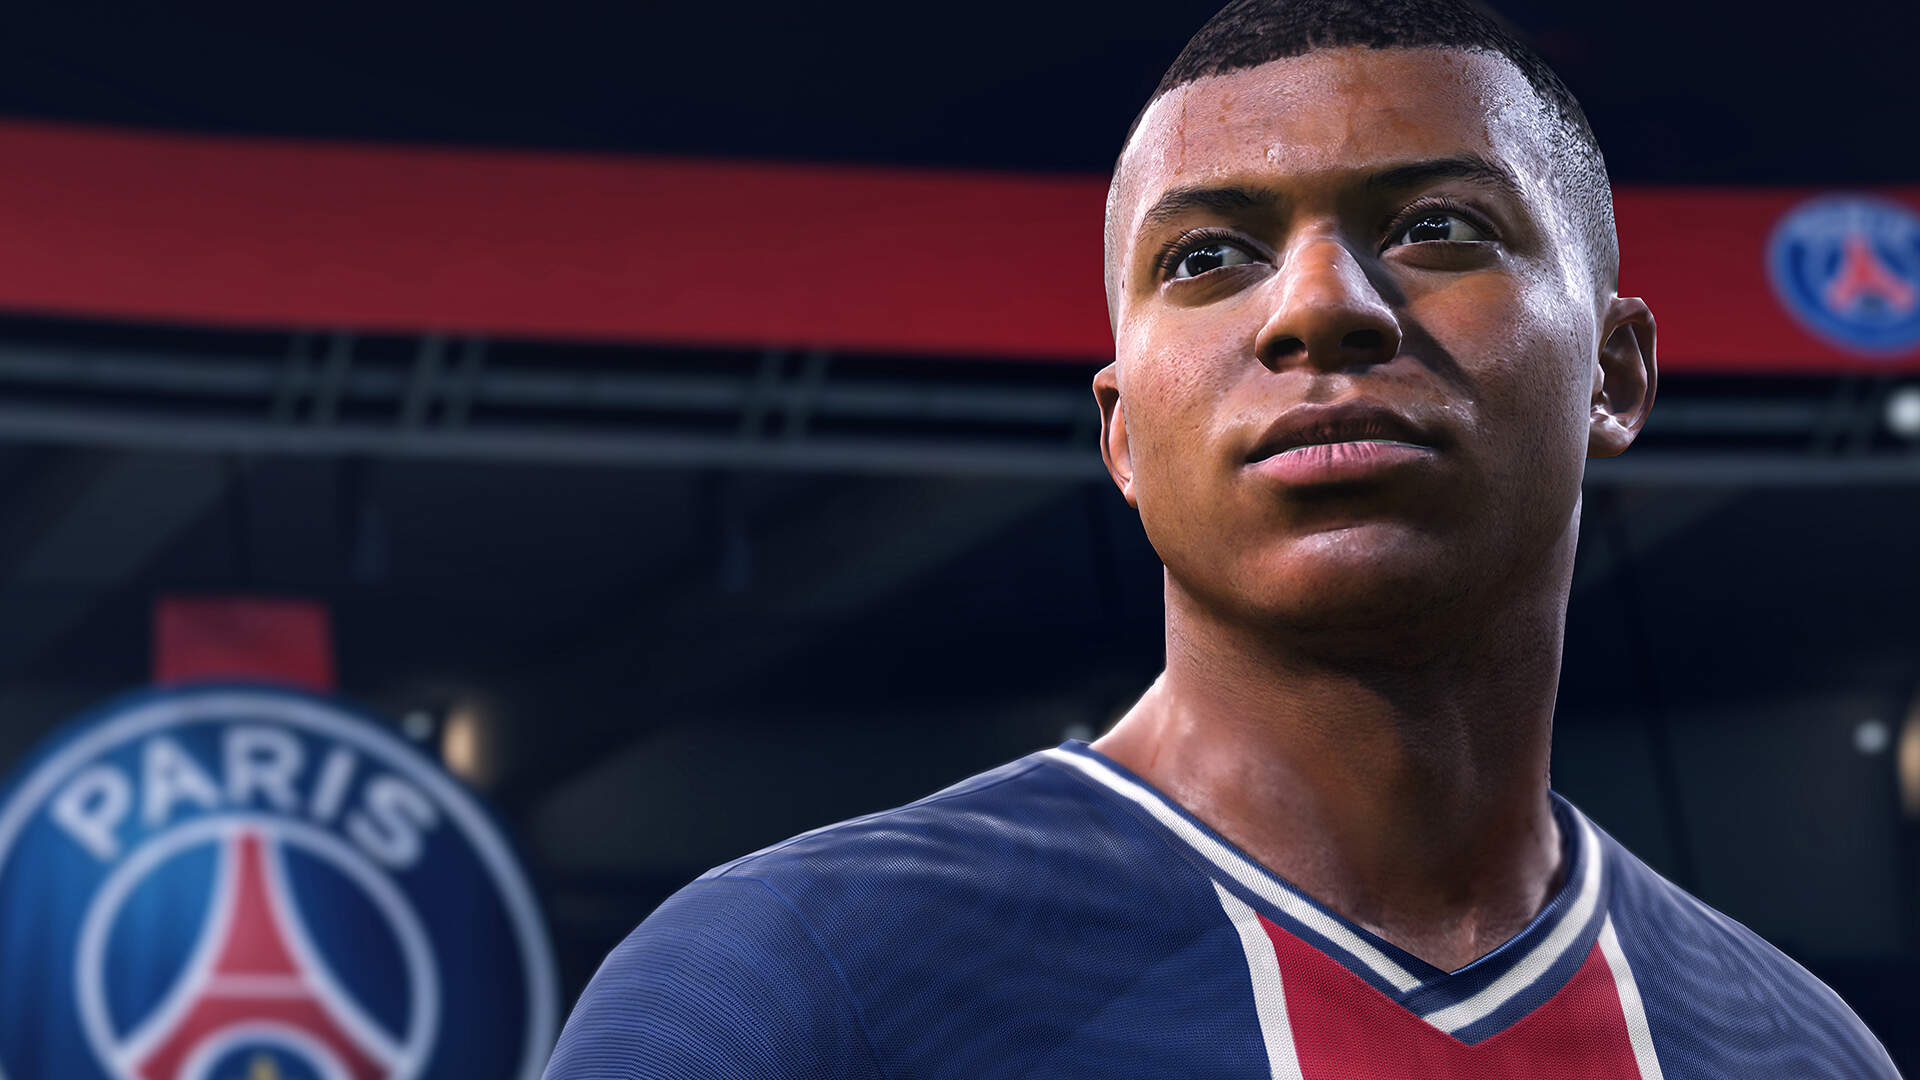 FIFA 21 Review: One Final Shot